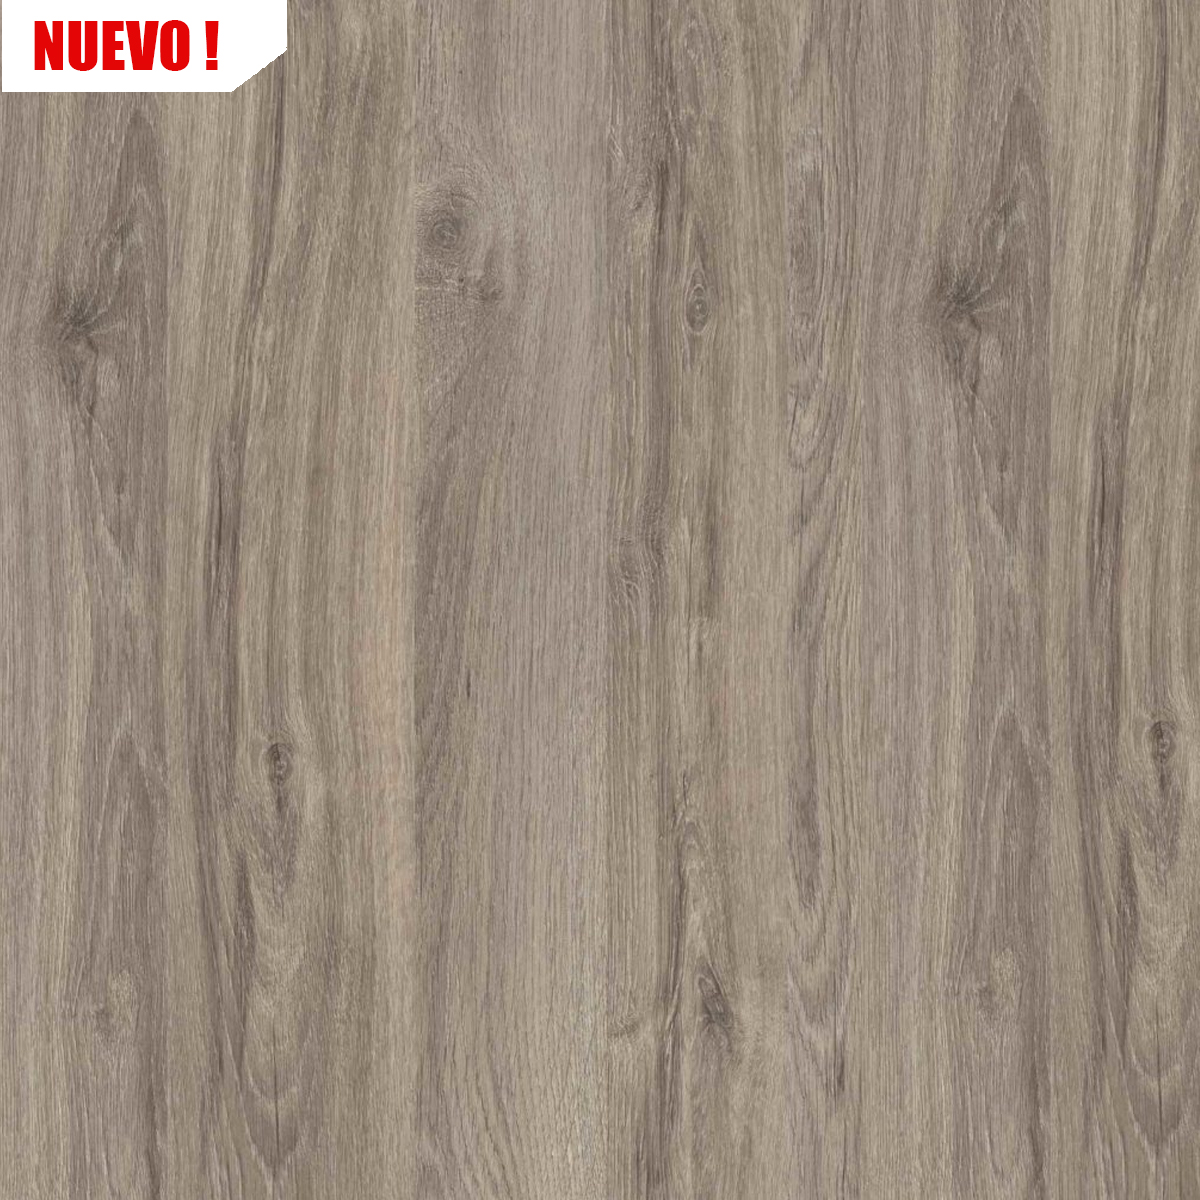 PLACAS MELAMINA BALTICO 18MM 183X275